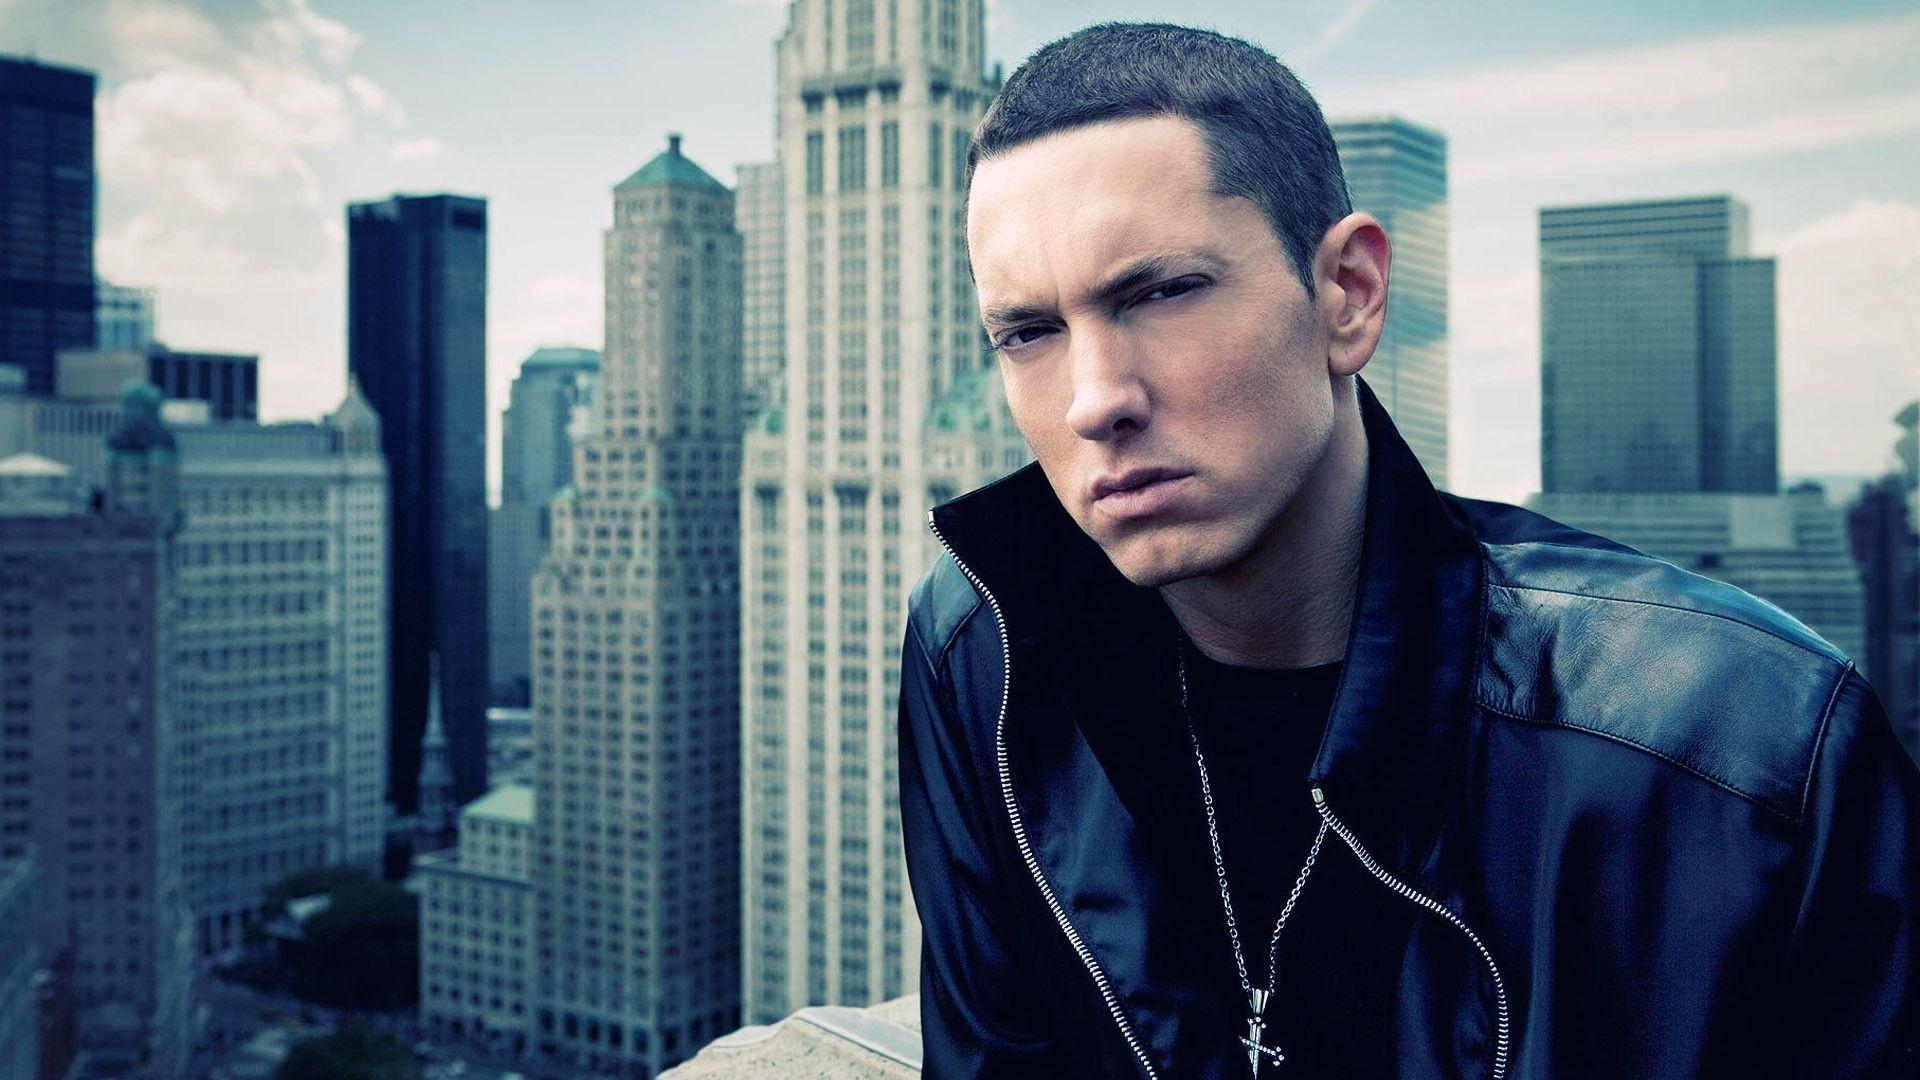 Eminem Wallpapers HD | Wallpapers, Backgrounds, Images, Art Photos.